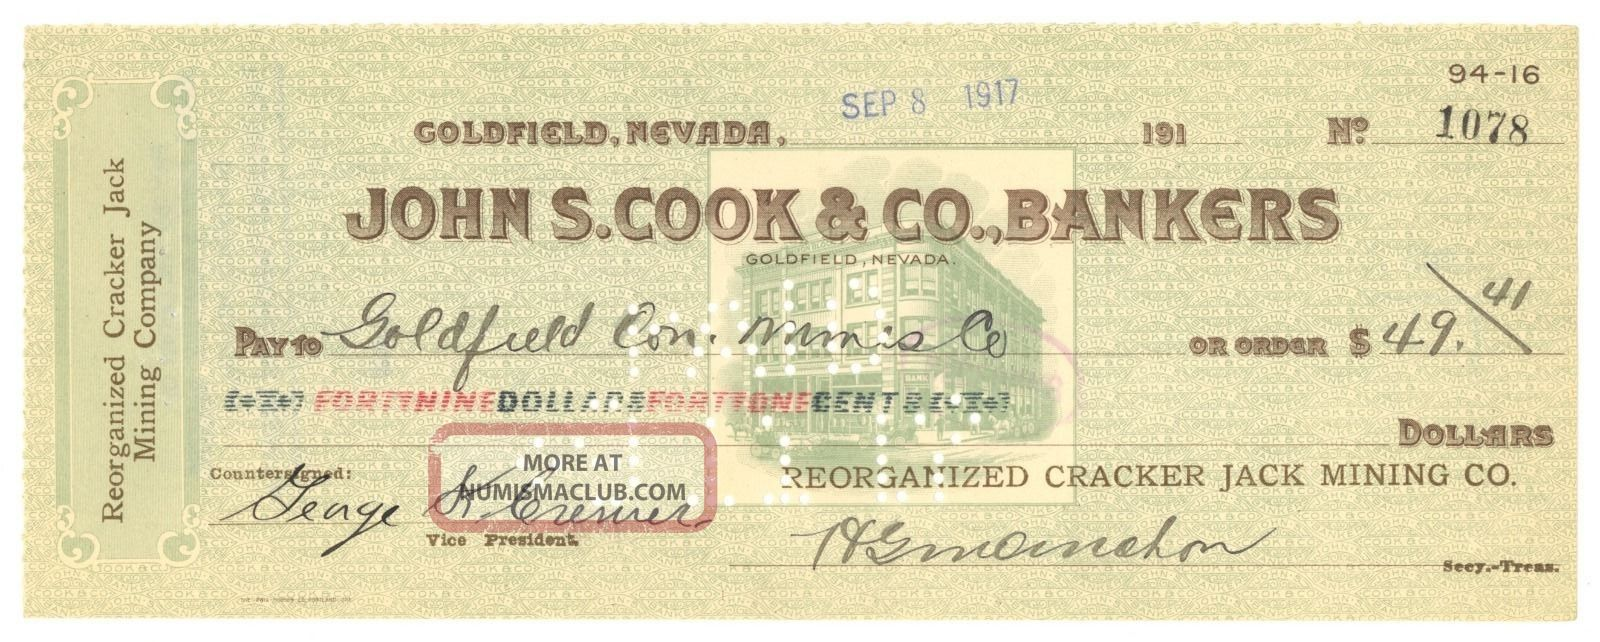 1917 Reorganized Cracker Jack Mining Co.  - Check 1078 - Goldfield,  Nevada Stocks & Bonds, Scripophily photo